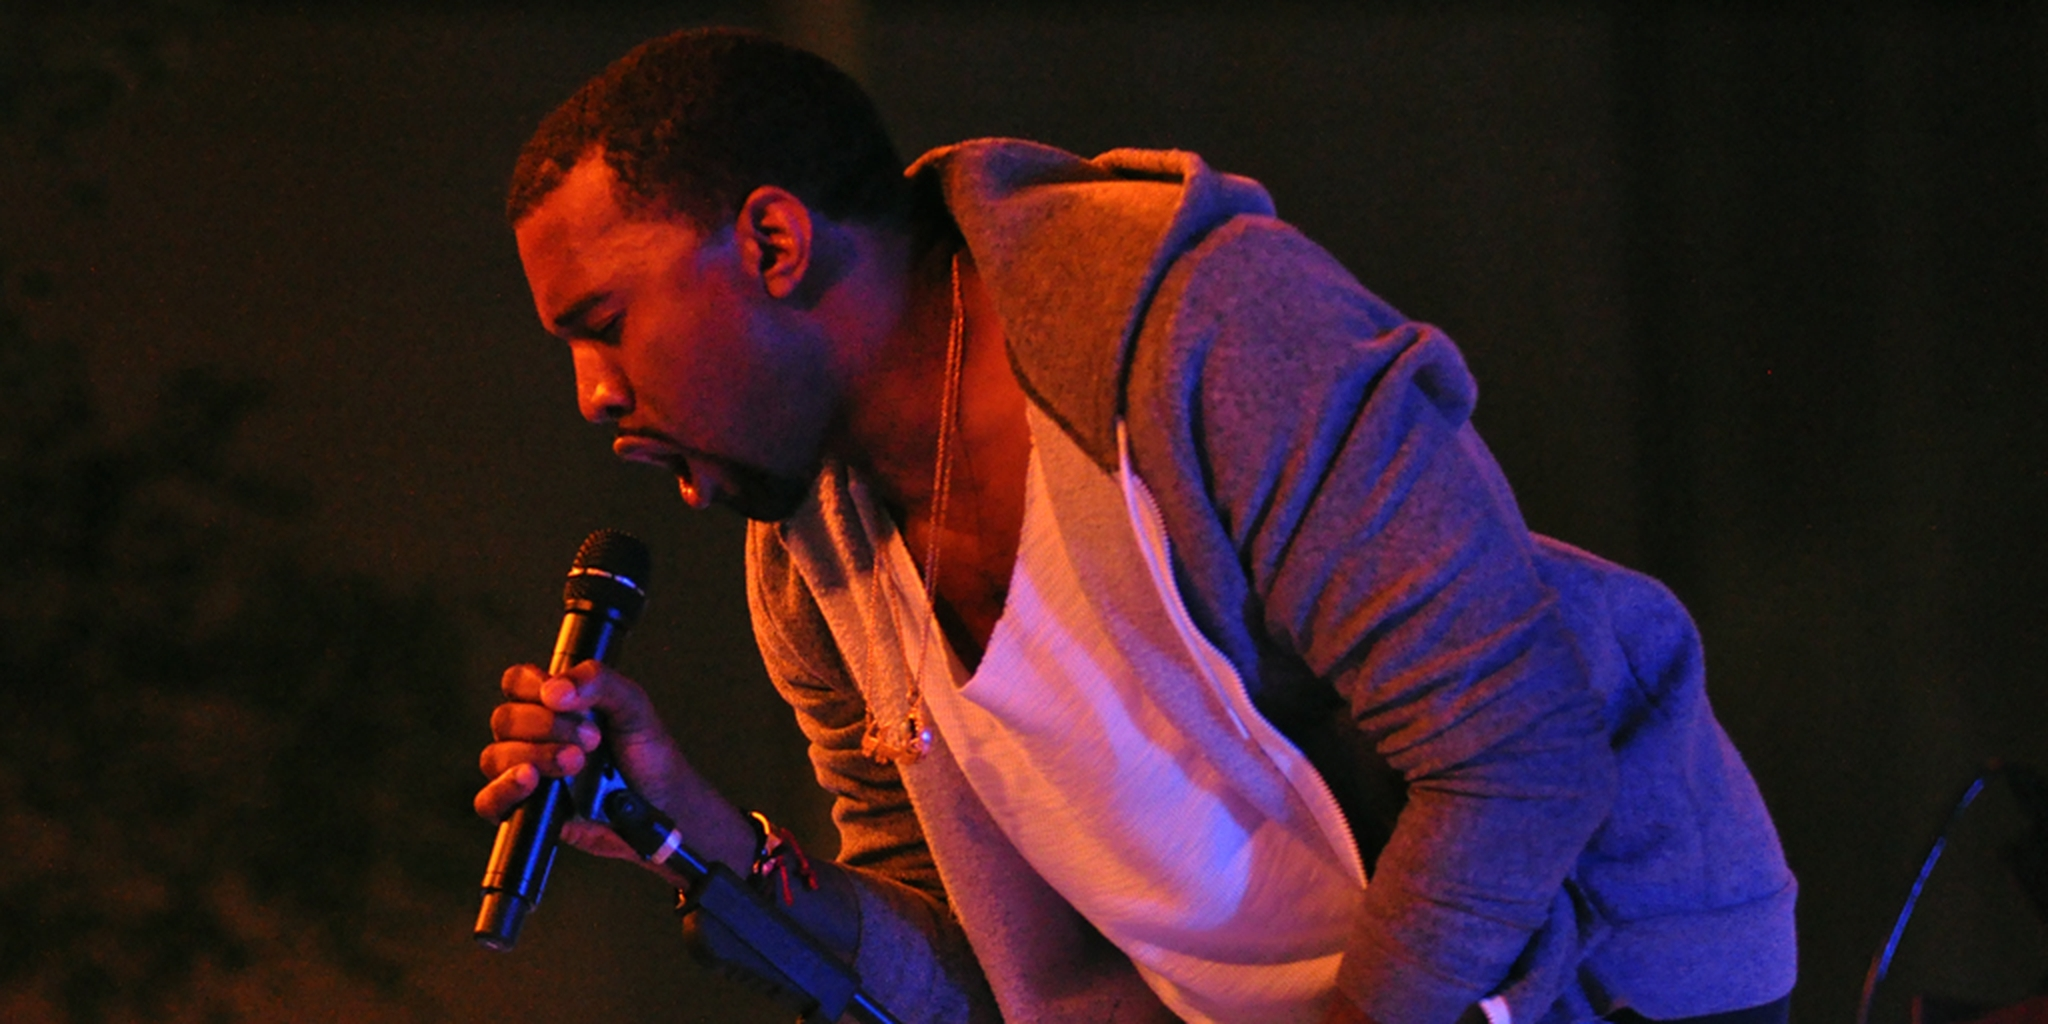 Kanye West Performing at the Moma